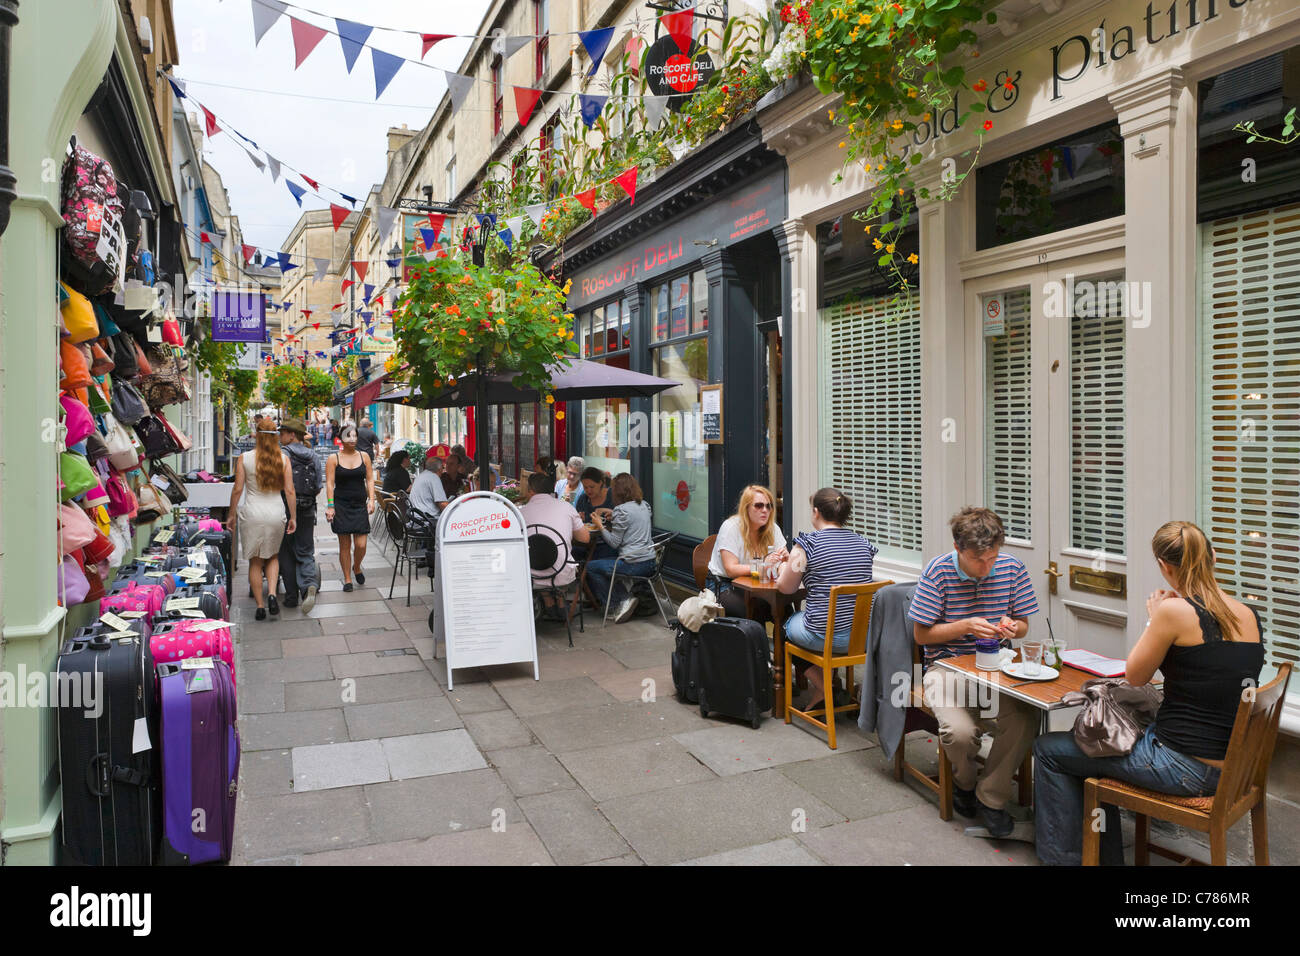 Shops and cafes on Northumberland Place in the city centre, Bath, Somerset, England, UK - Stock Image